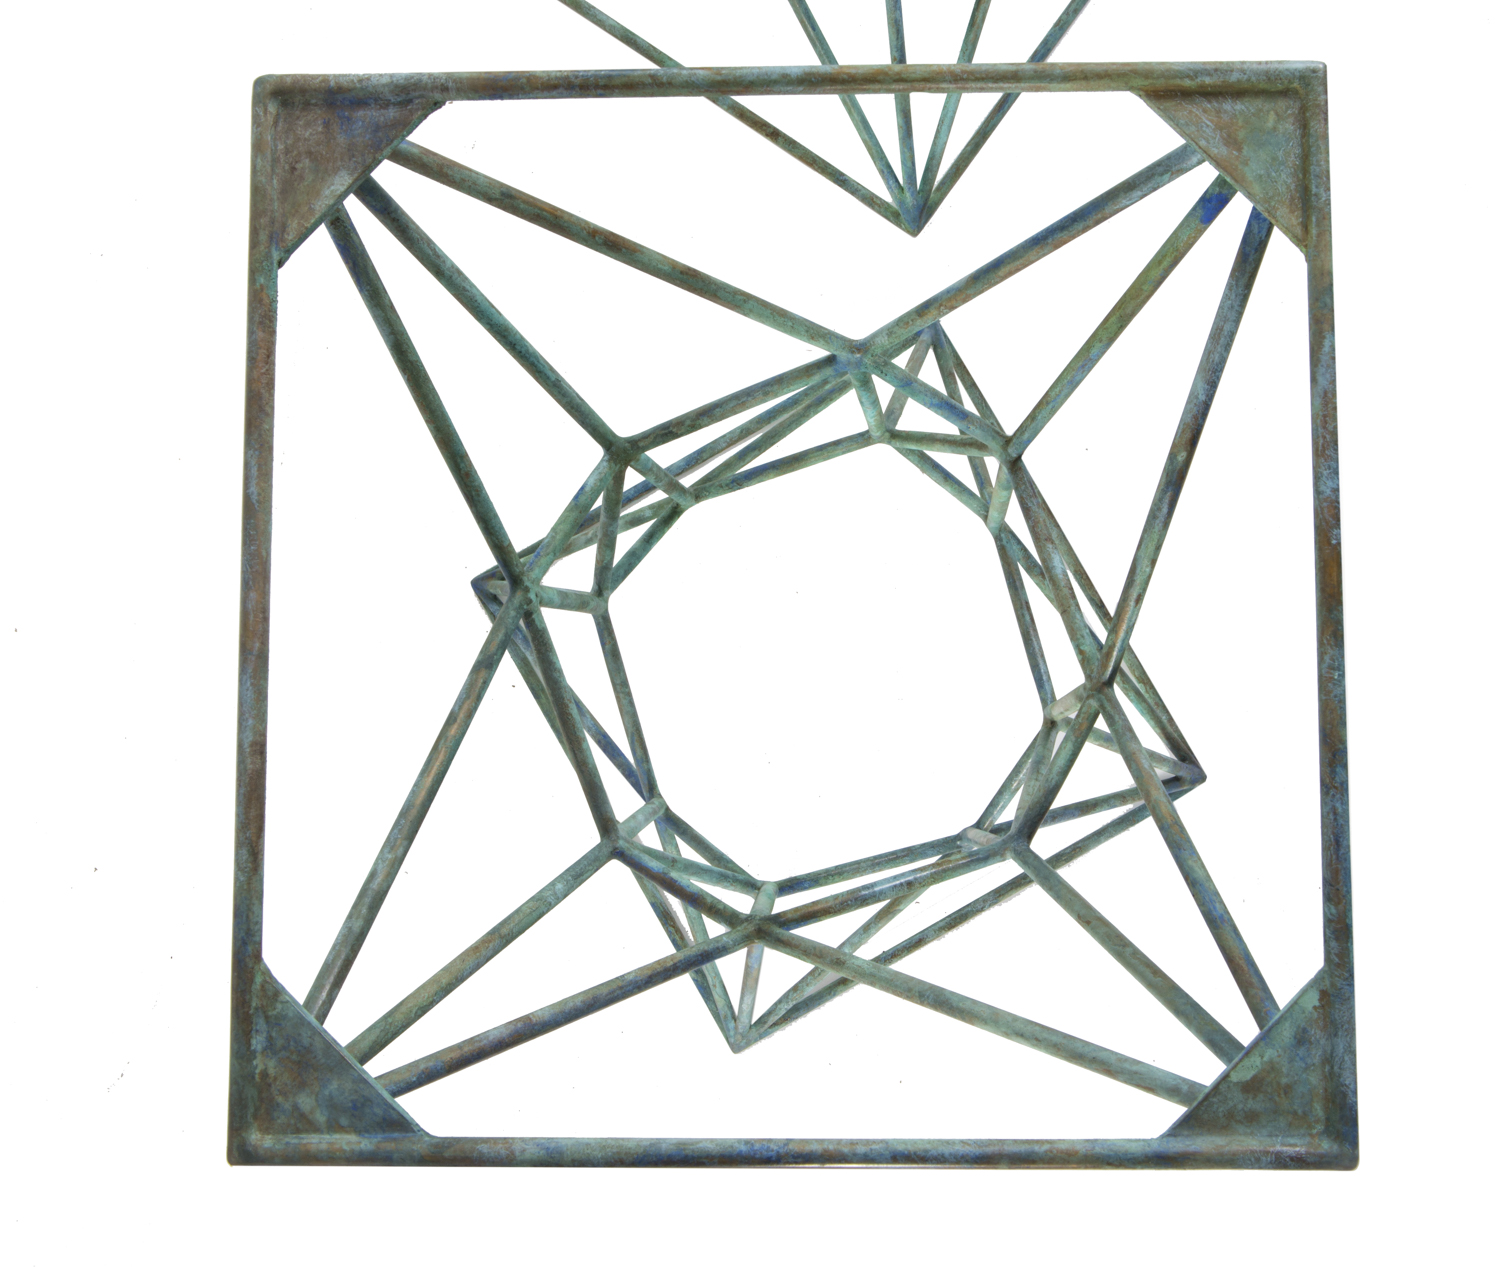 Archimedes_Green Marble Top_05.jpg